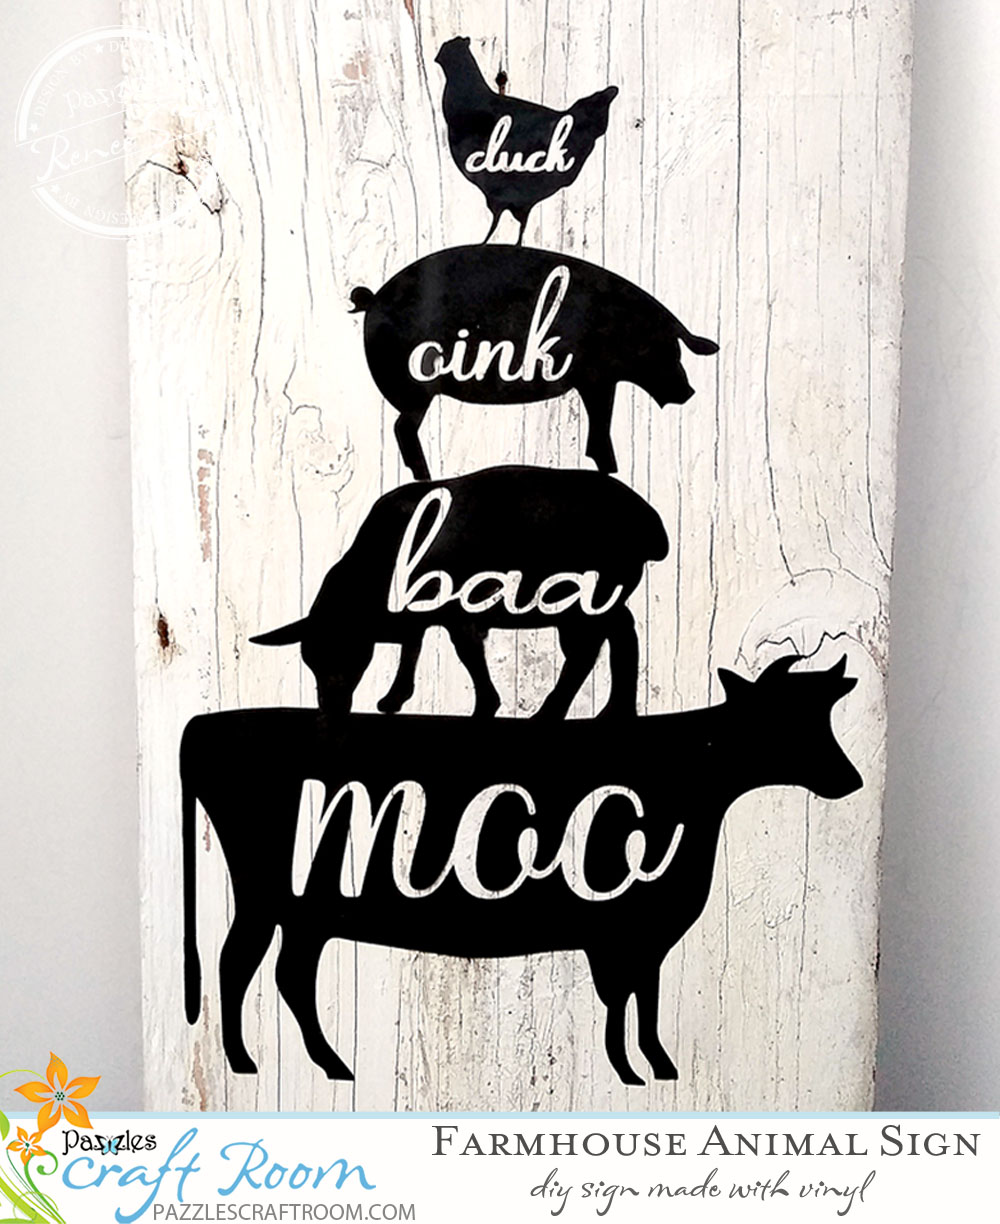 Pazzles DIY Animal Stack Farmhouse Sign by Renee Smart